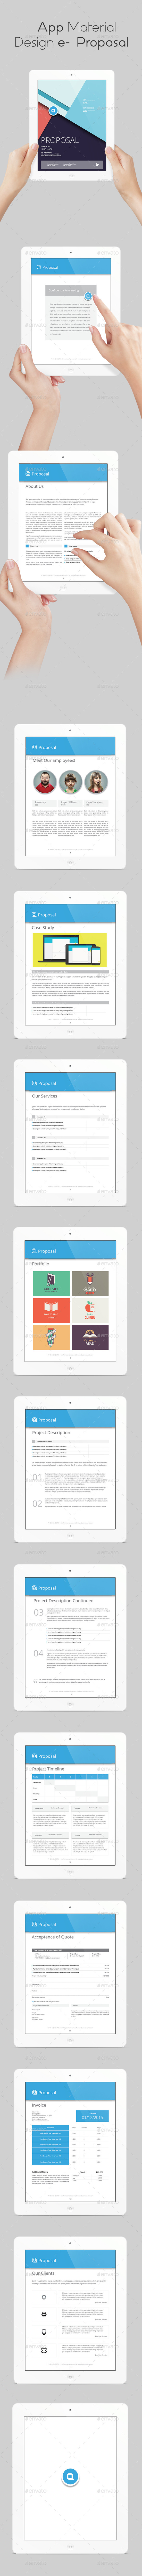 GraphicRiver App Material Design e Proposal 10740979